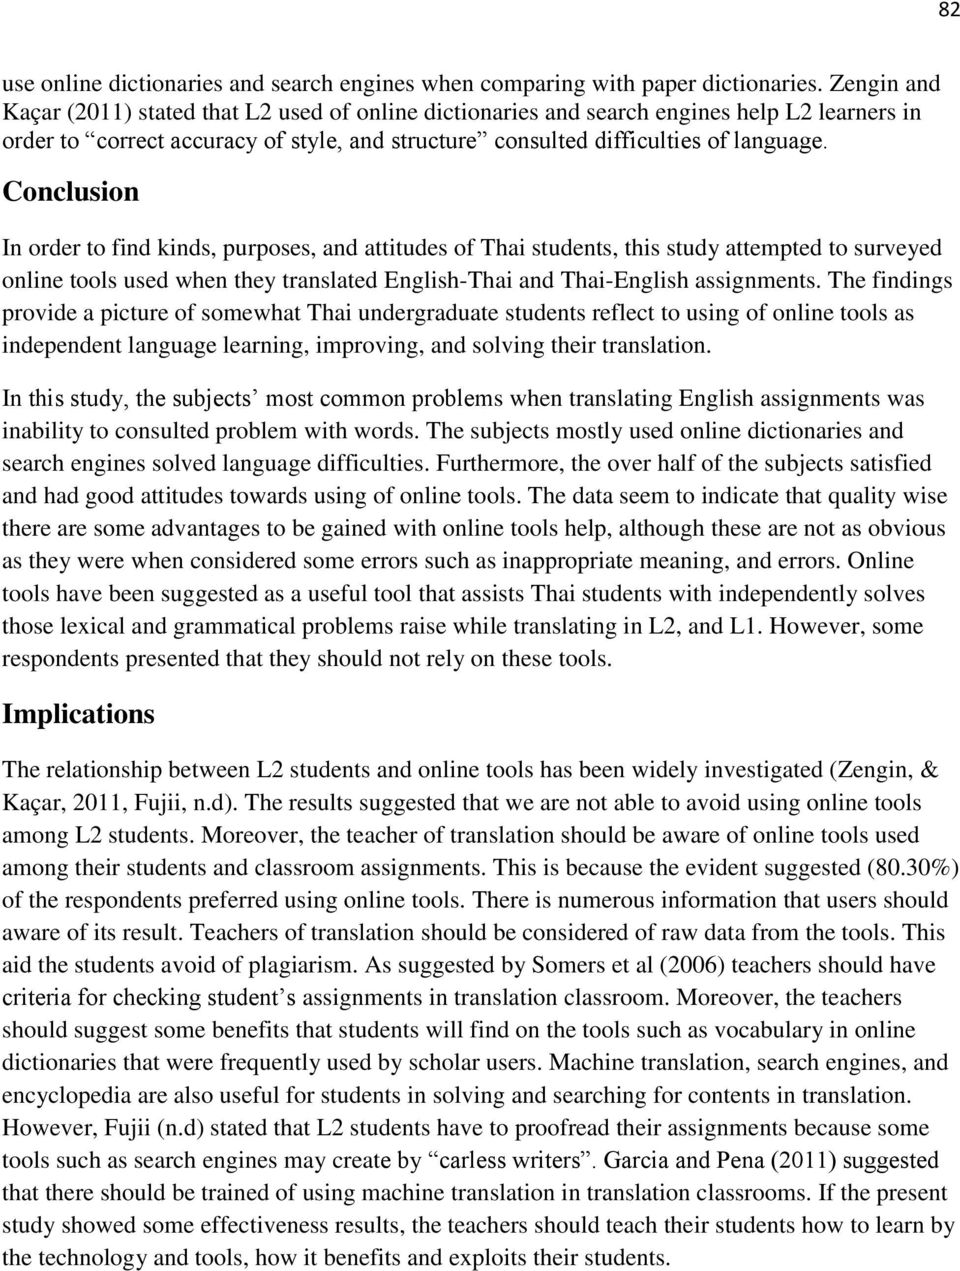 Conclusion In order to find kinds, purposes, and attitudes of Thai students, this study attempted to surveyed online tools used when they translated English-Thai and Thai-English assignments.